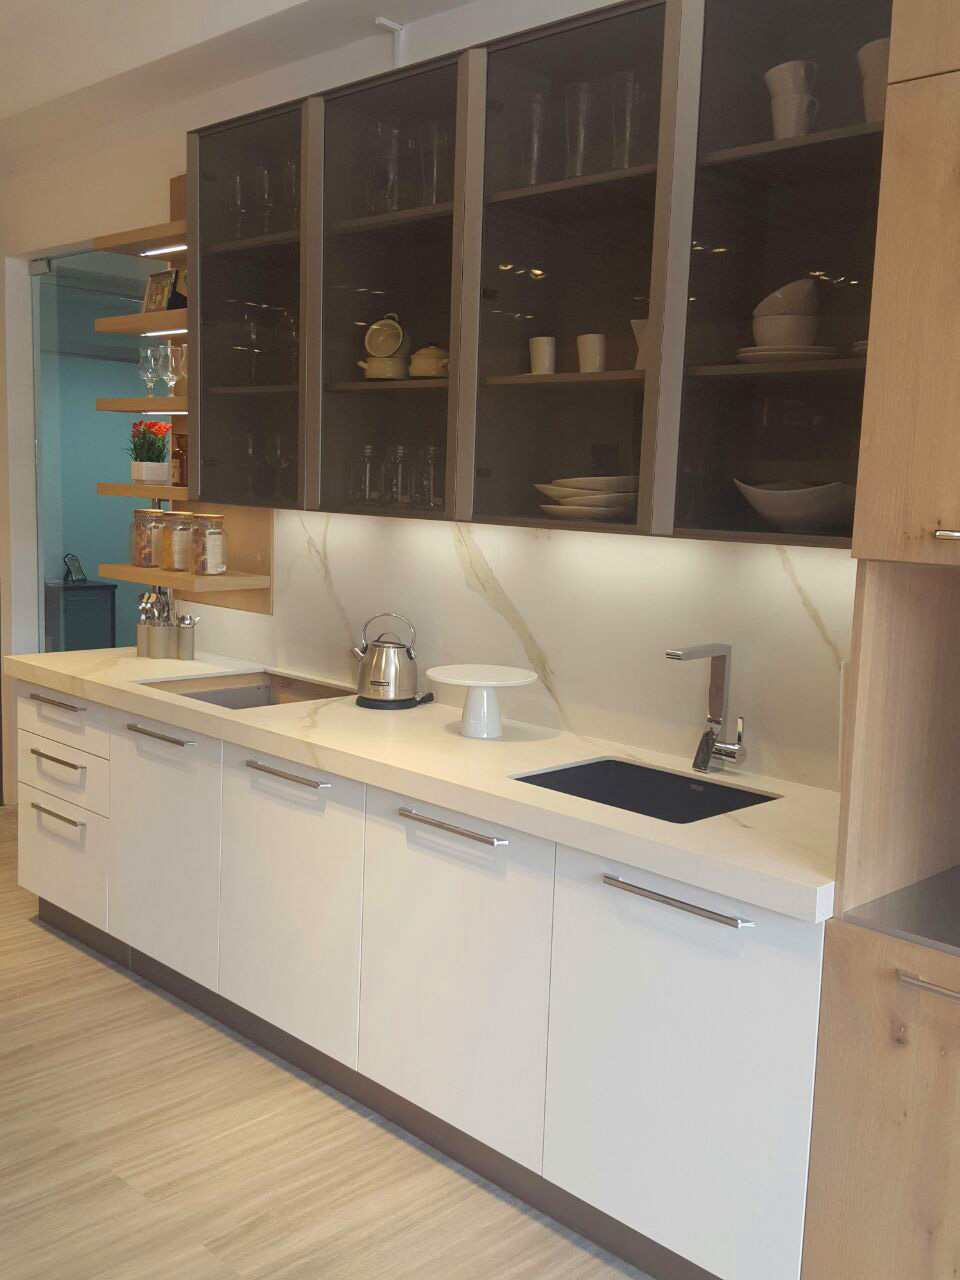 Cucine Lube opened the first showroom in Costa Rica - Kitchens Lube